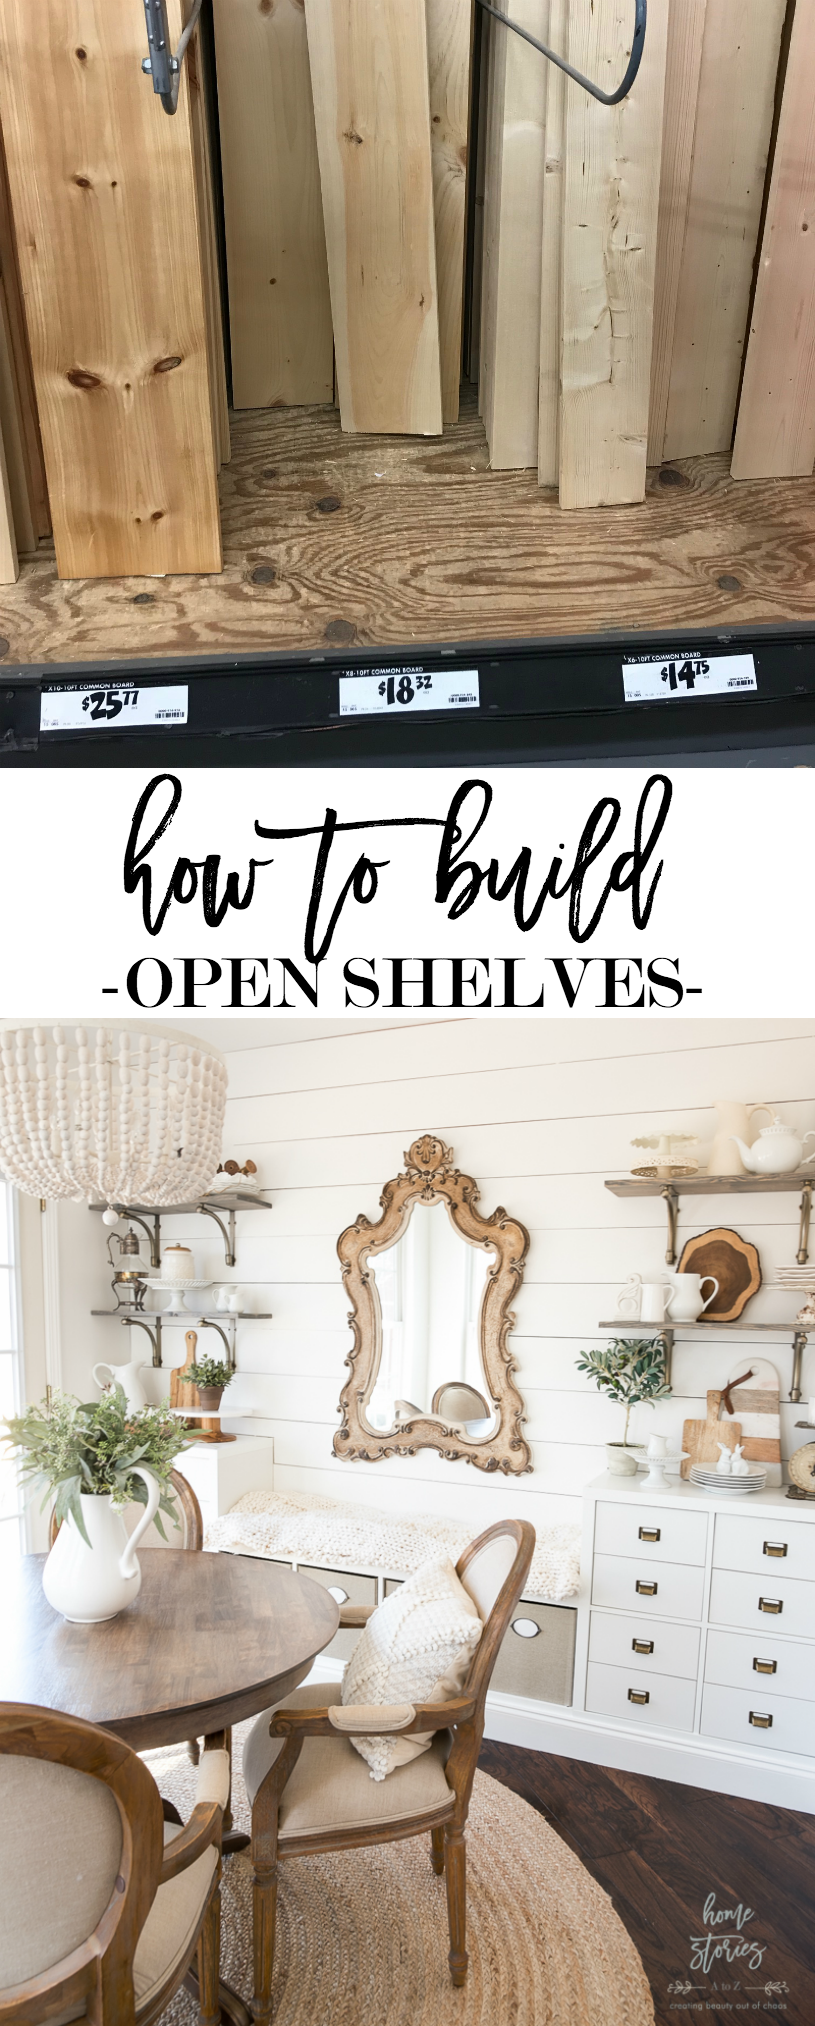 how to build open shelves, open shelving tutorial